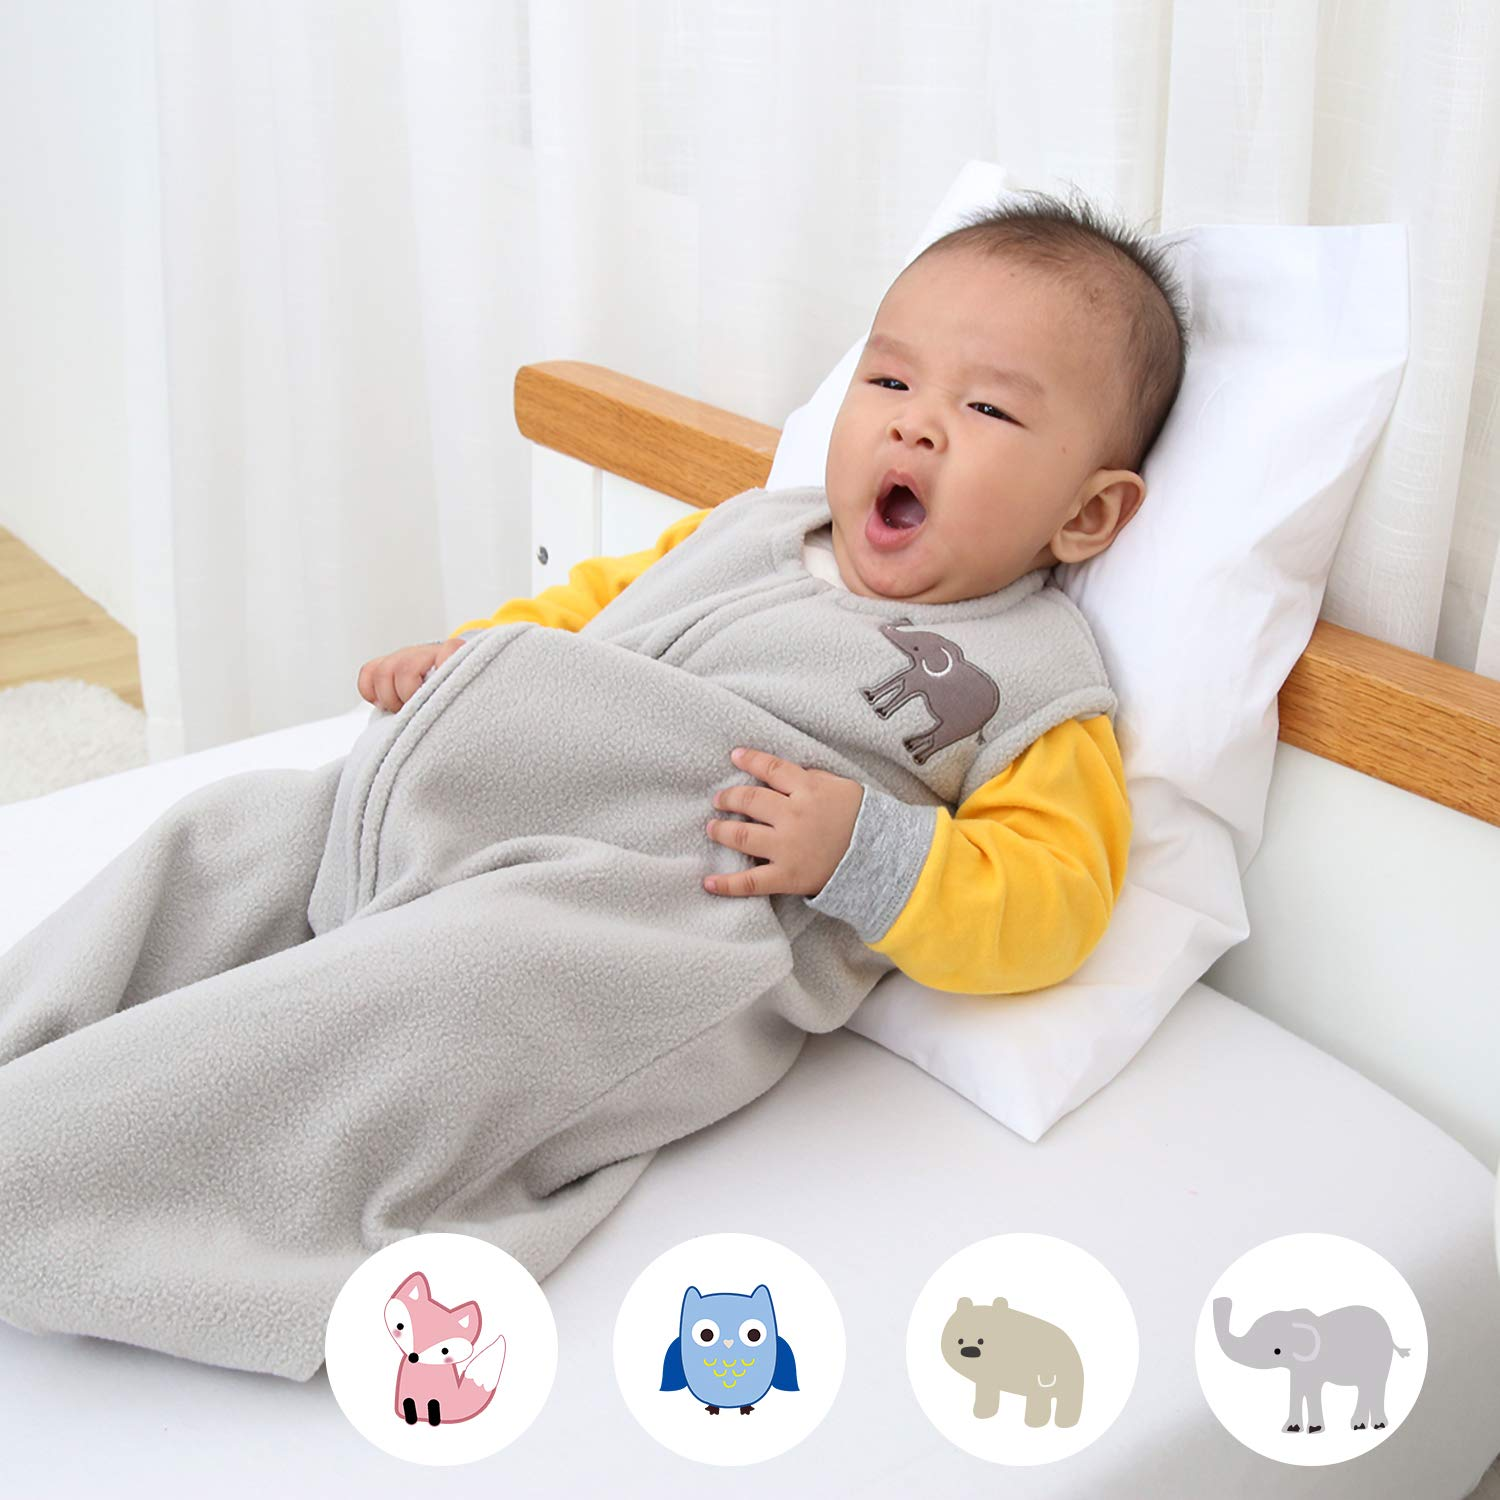 Fits Infants Newborns Ages 6-12 Months TOG 1 Baby Wearable Blanket with Zipper 100/% Thermal Warm Micro Fleece TILLYOU Ultra Soft Sleeveless Sleep Bag Medium M Gray Elephant